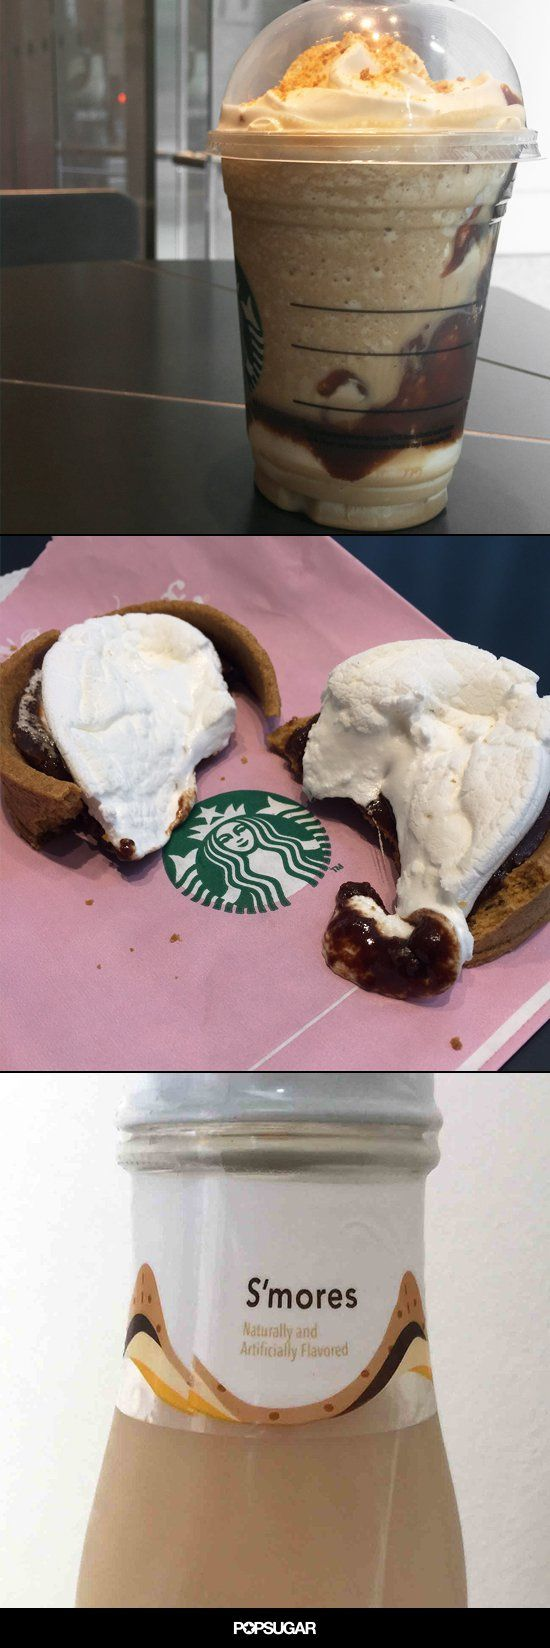 Pin for Later: Does the Starbucks S'mores Frappuccino Live Up to Your Dreams? Find Out Now